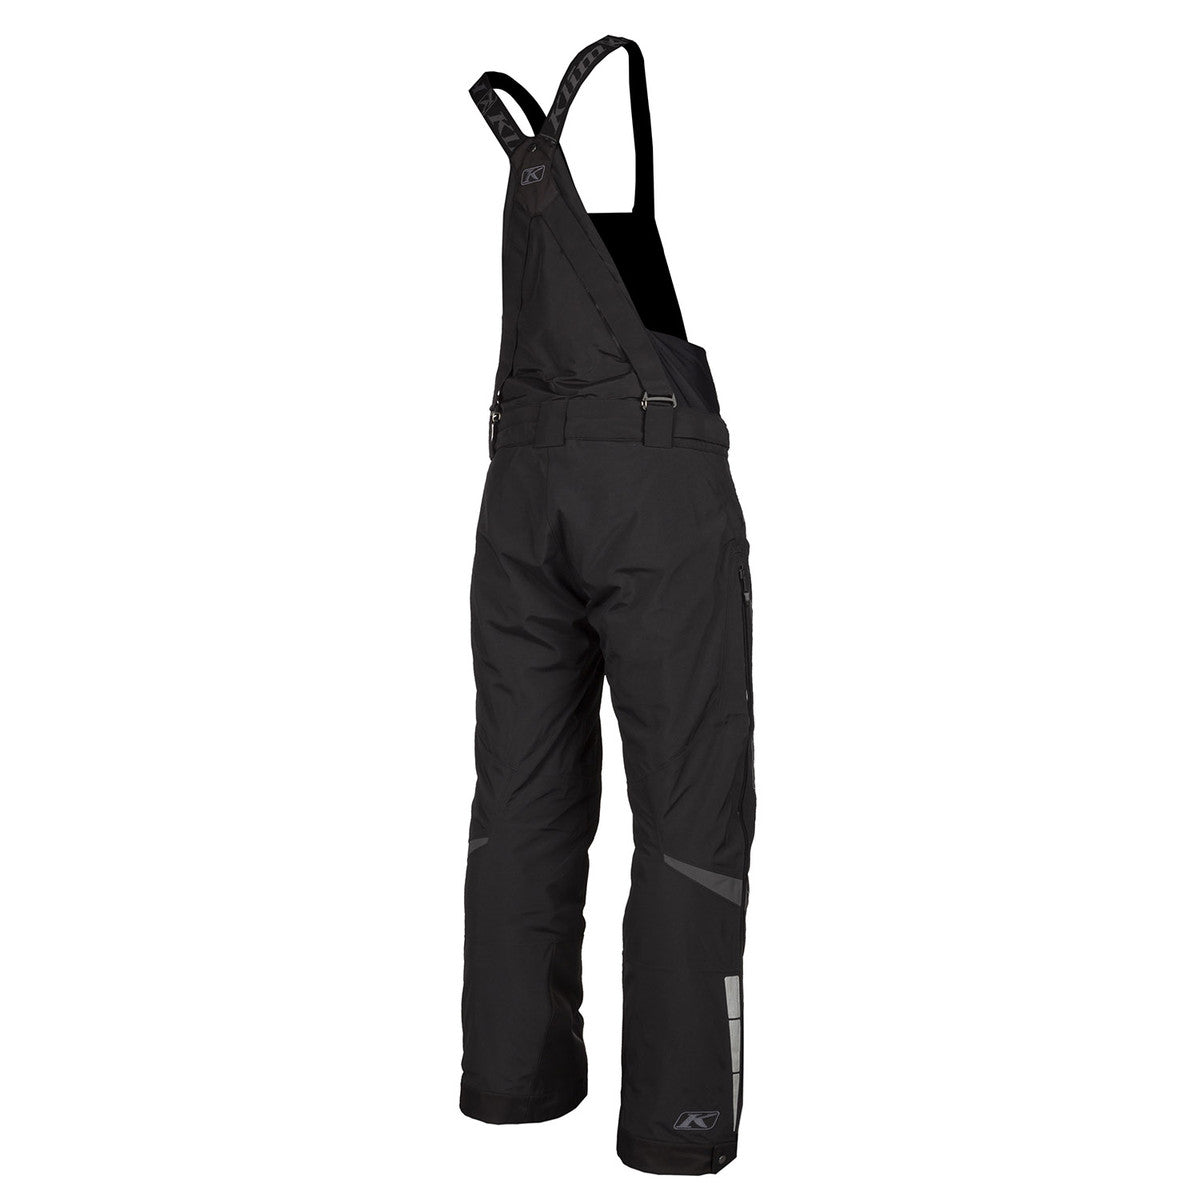 Keweenaw Black/Asphalt Men Tall Inseam Pants